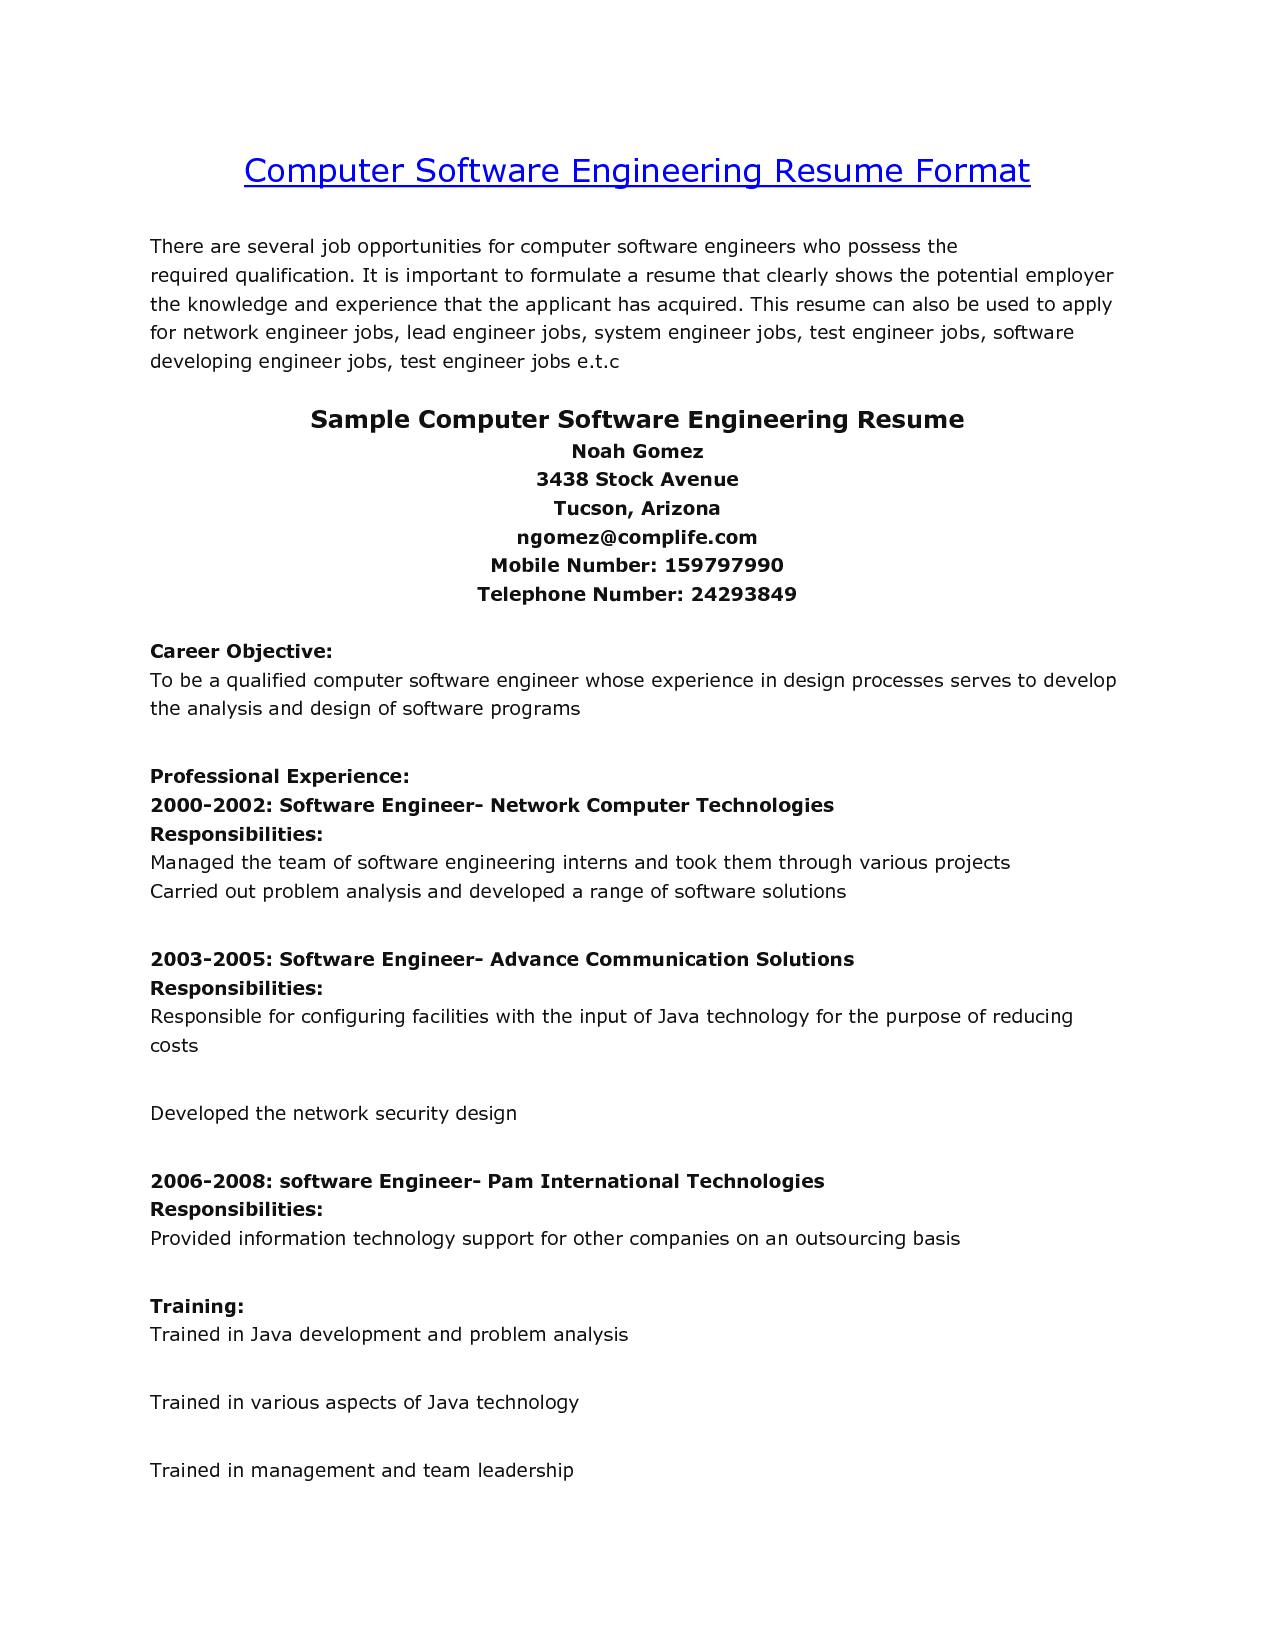 computer engineering resume template - Creative Computer Science Resume